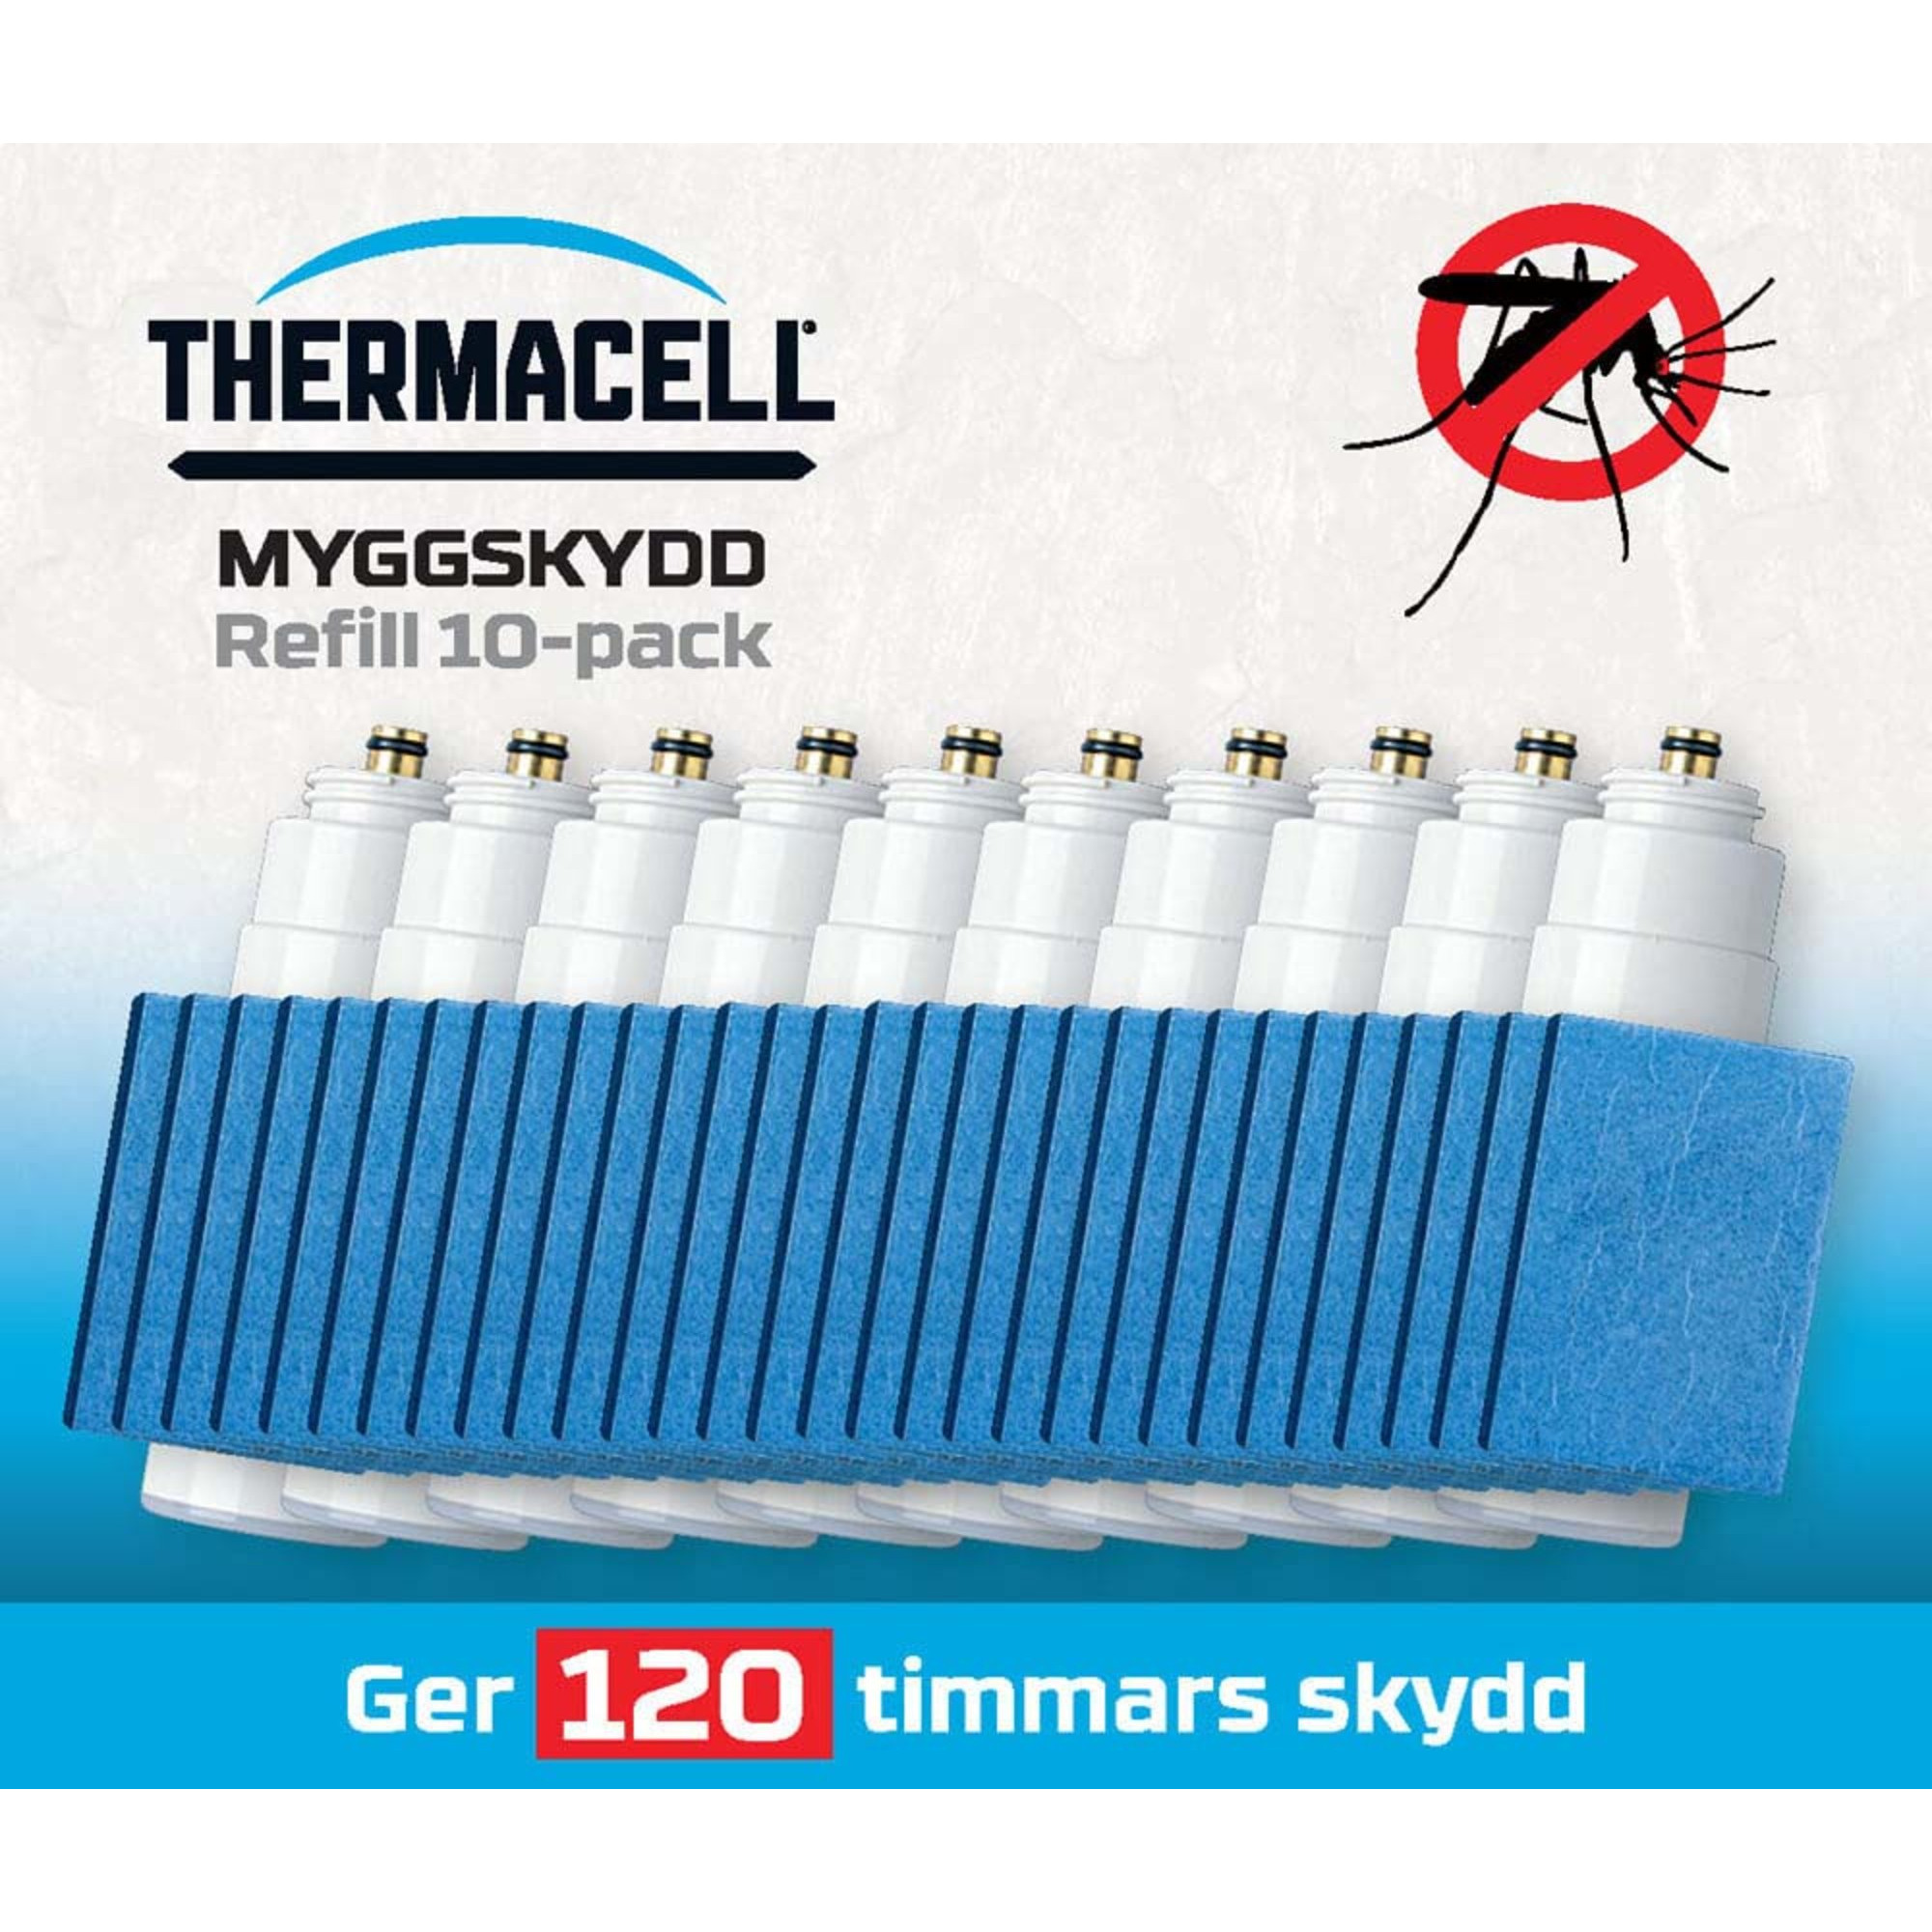 Thermacell Refill-pack 10 st